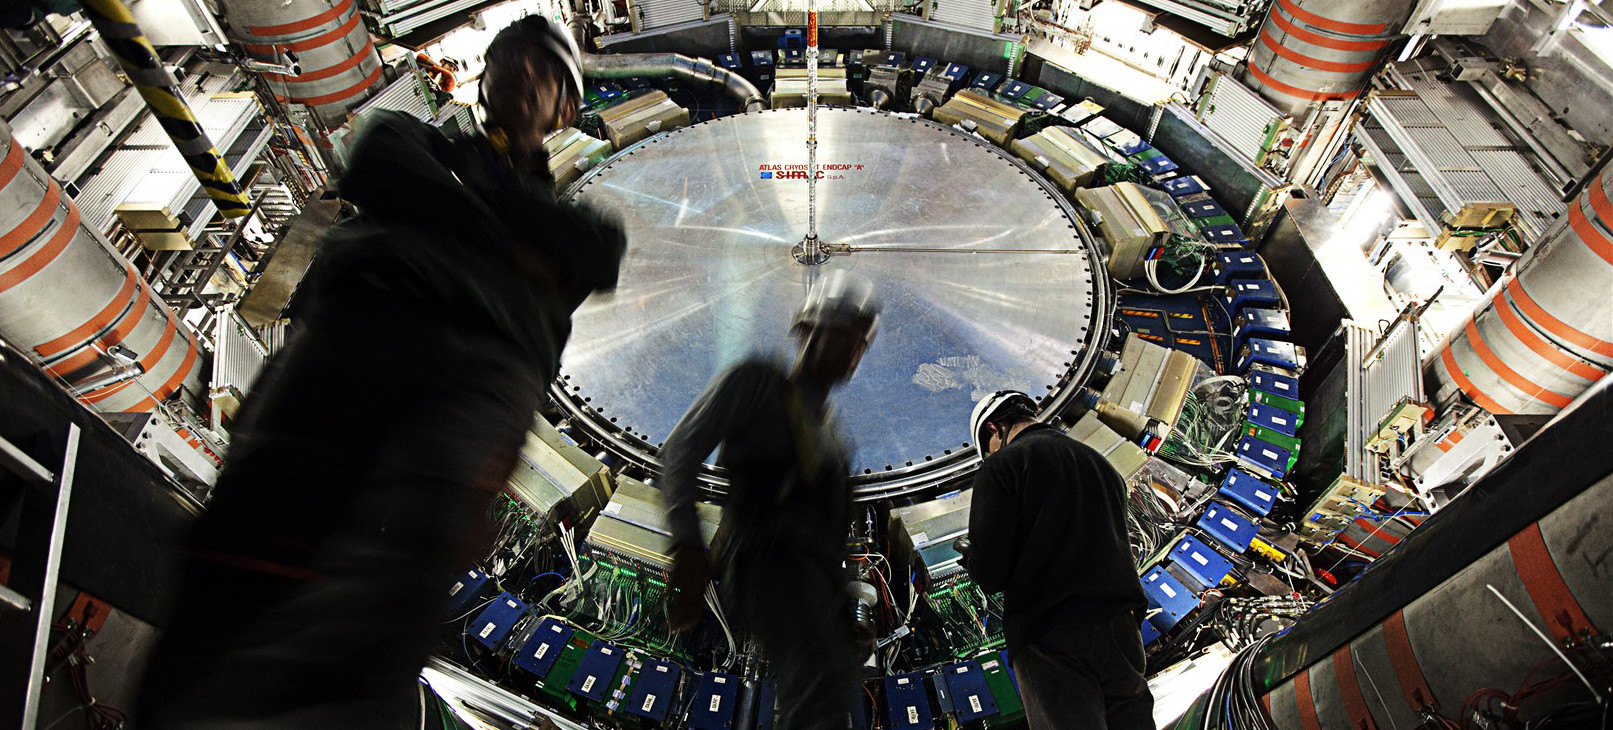 CERN Just Dropped 300 Terabytes of Raw Collider Data to the Internet